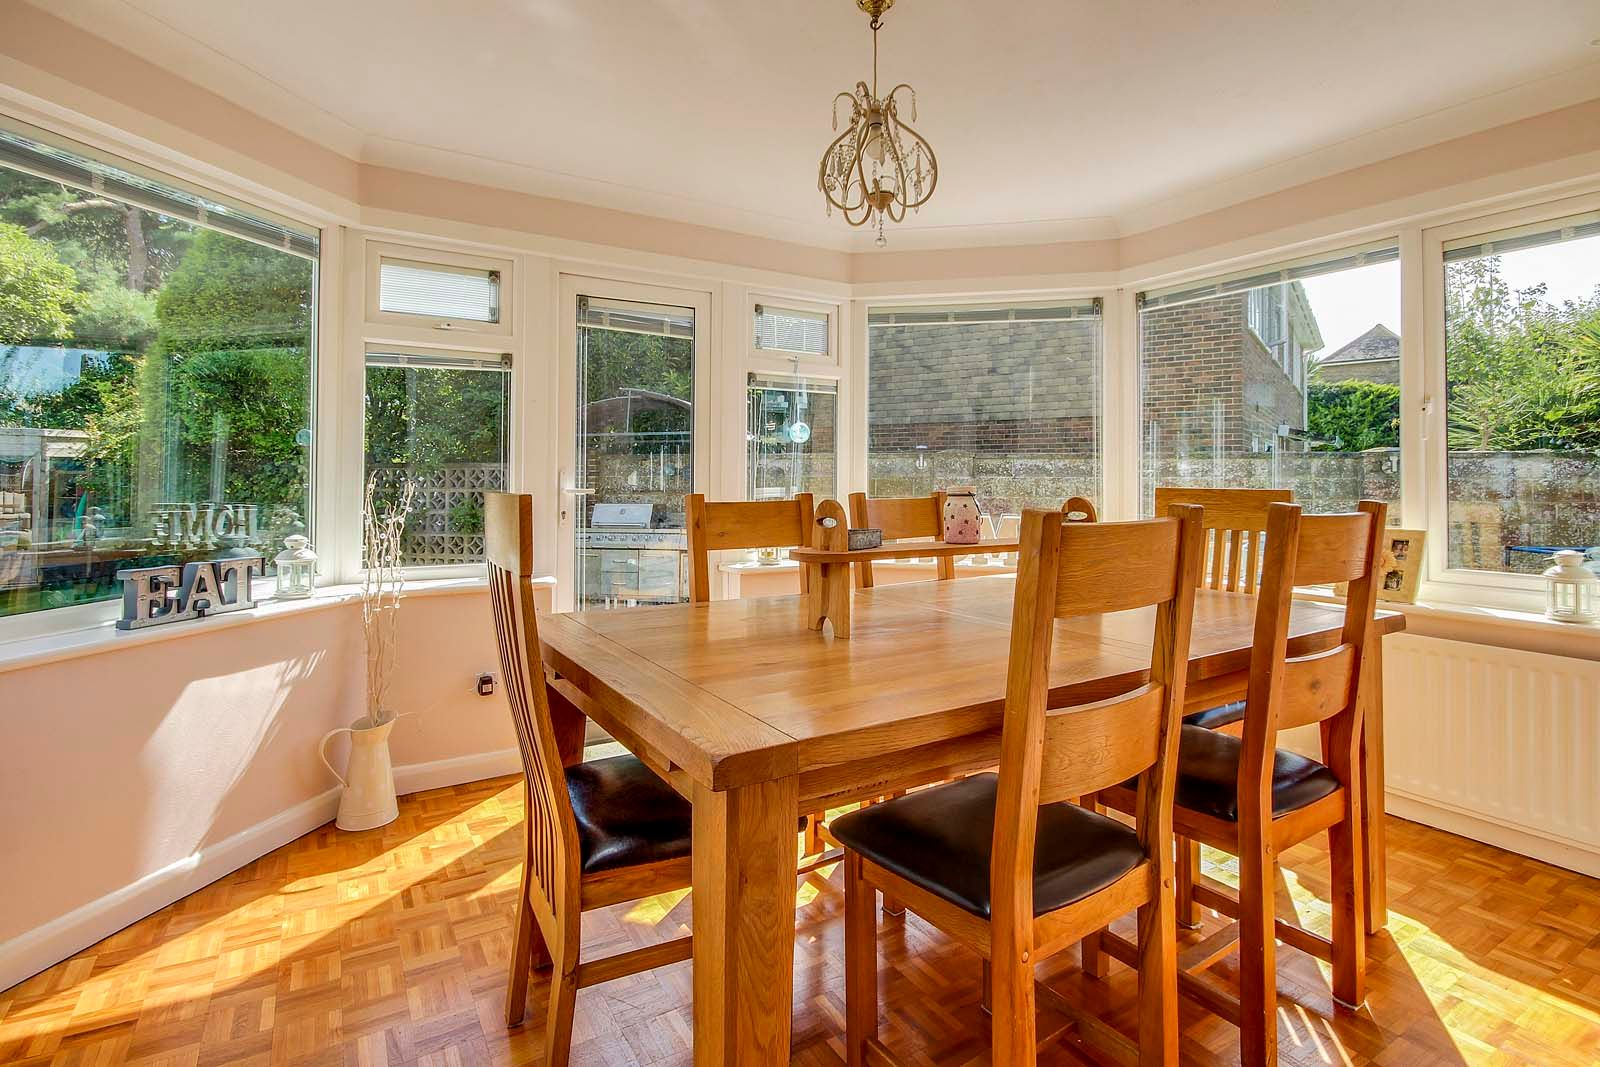 4 bed House for sale in Rustington - Dining room (Property Image 7)